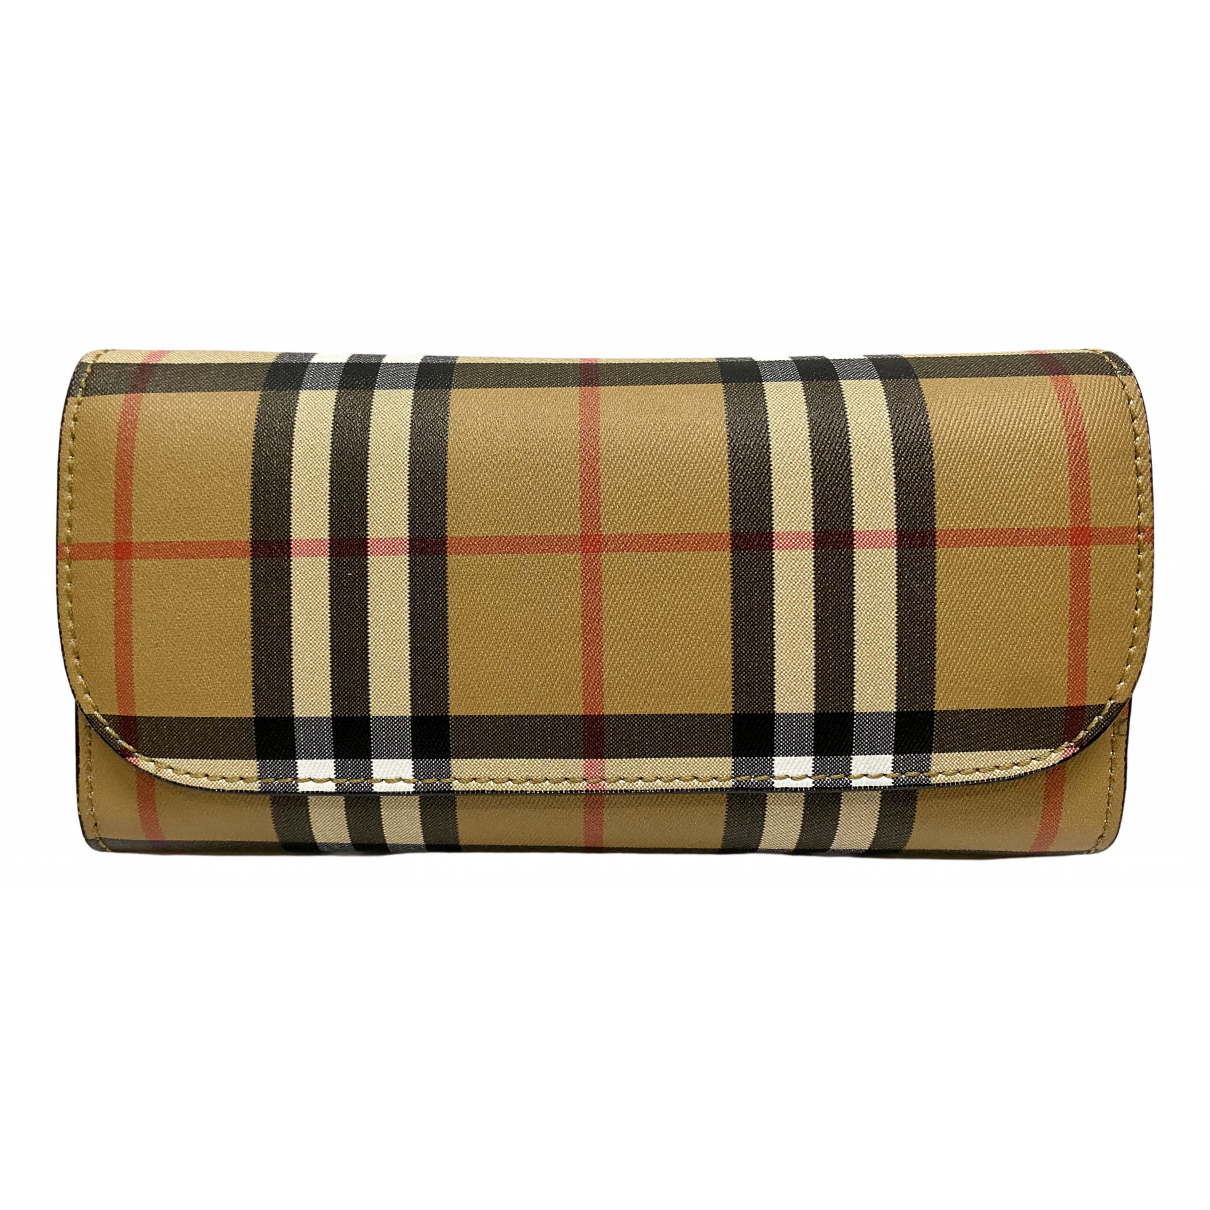 Burberry N Camel Cloth wallet for Women N